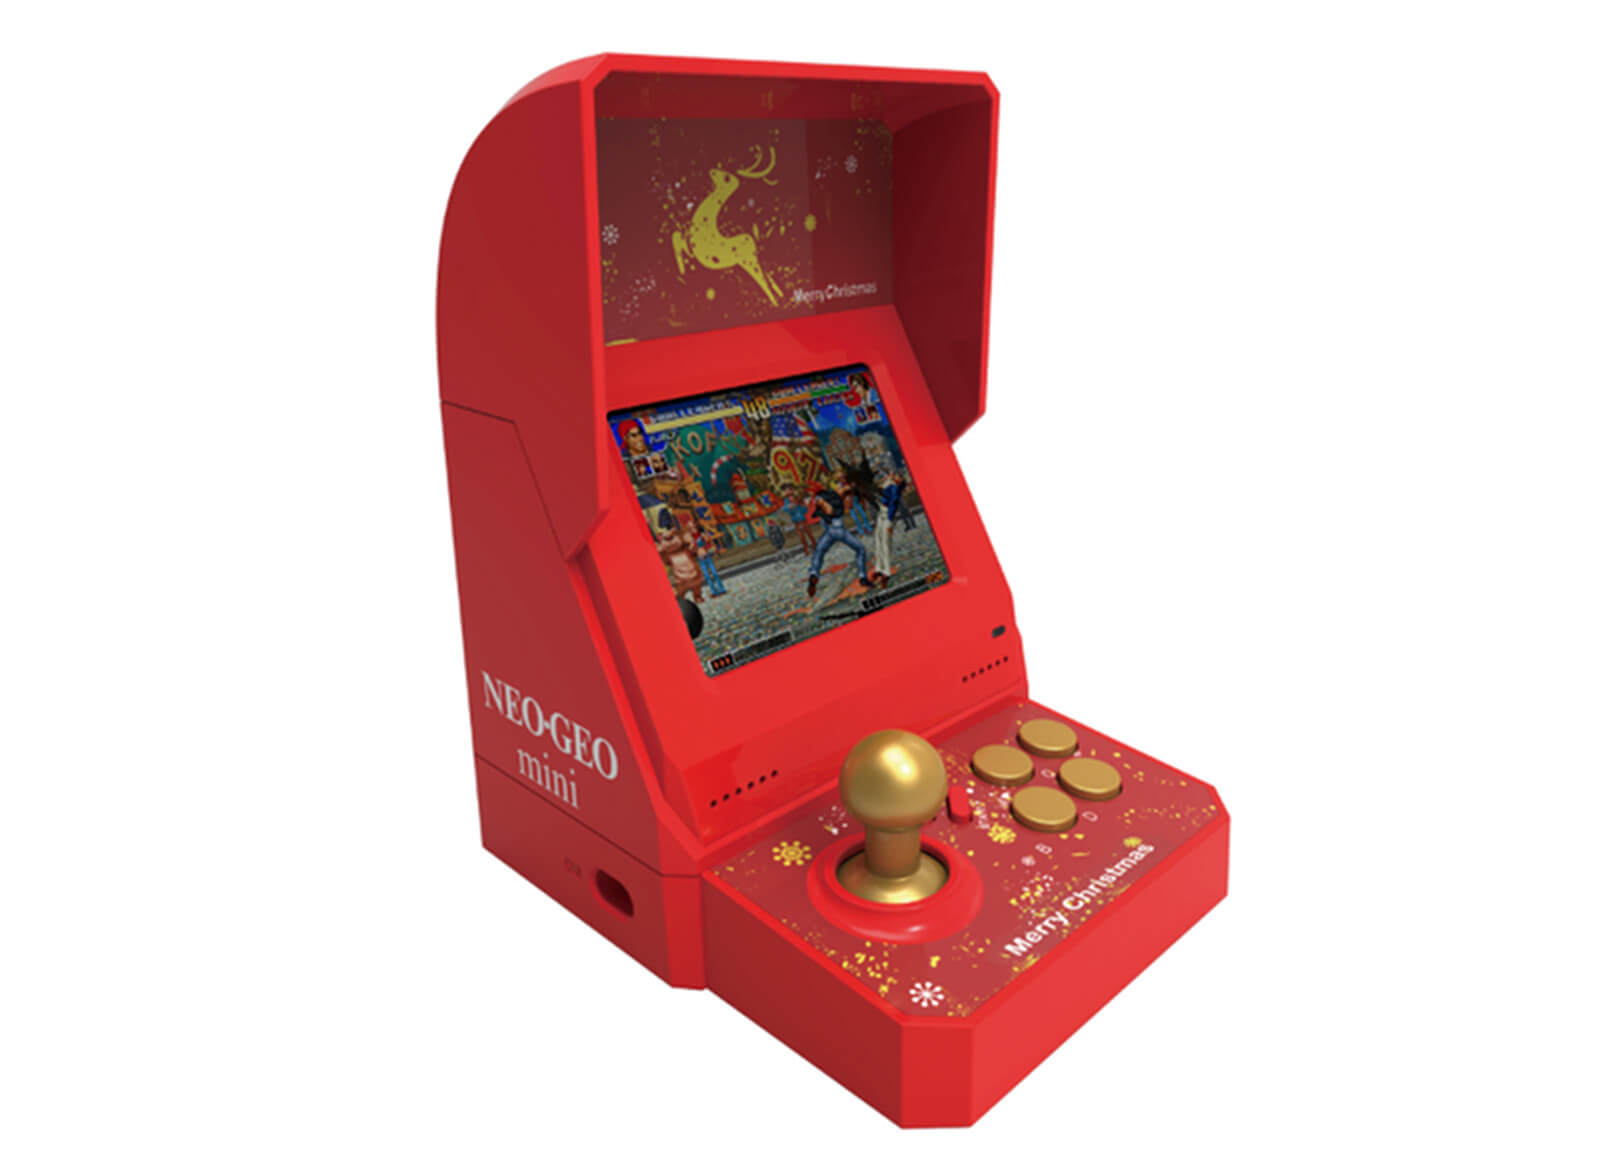 Neo Geo Mini Christmas Limited Edition